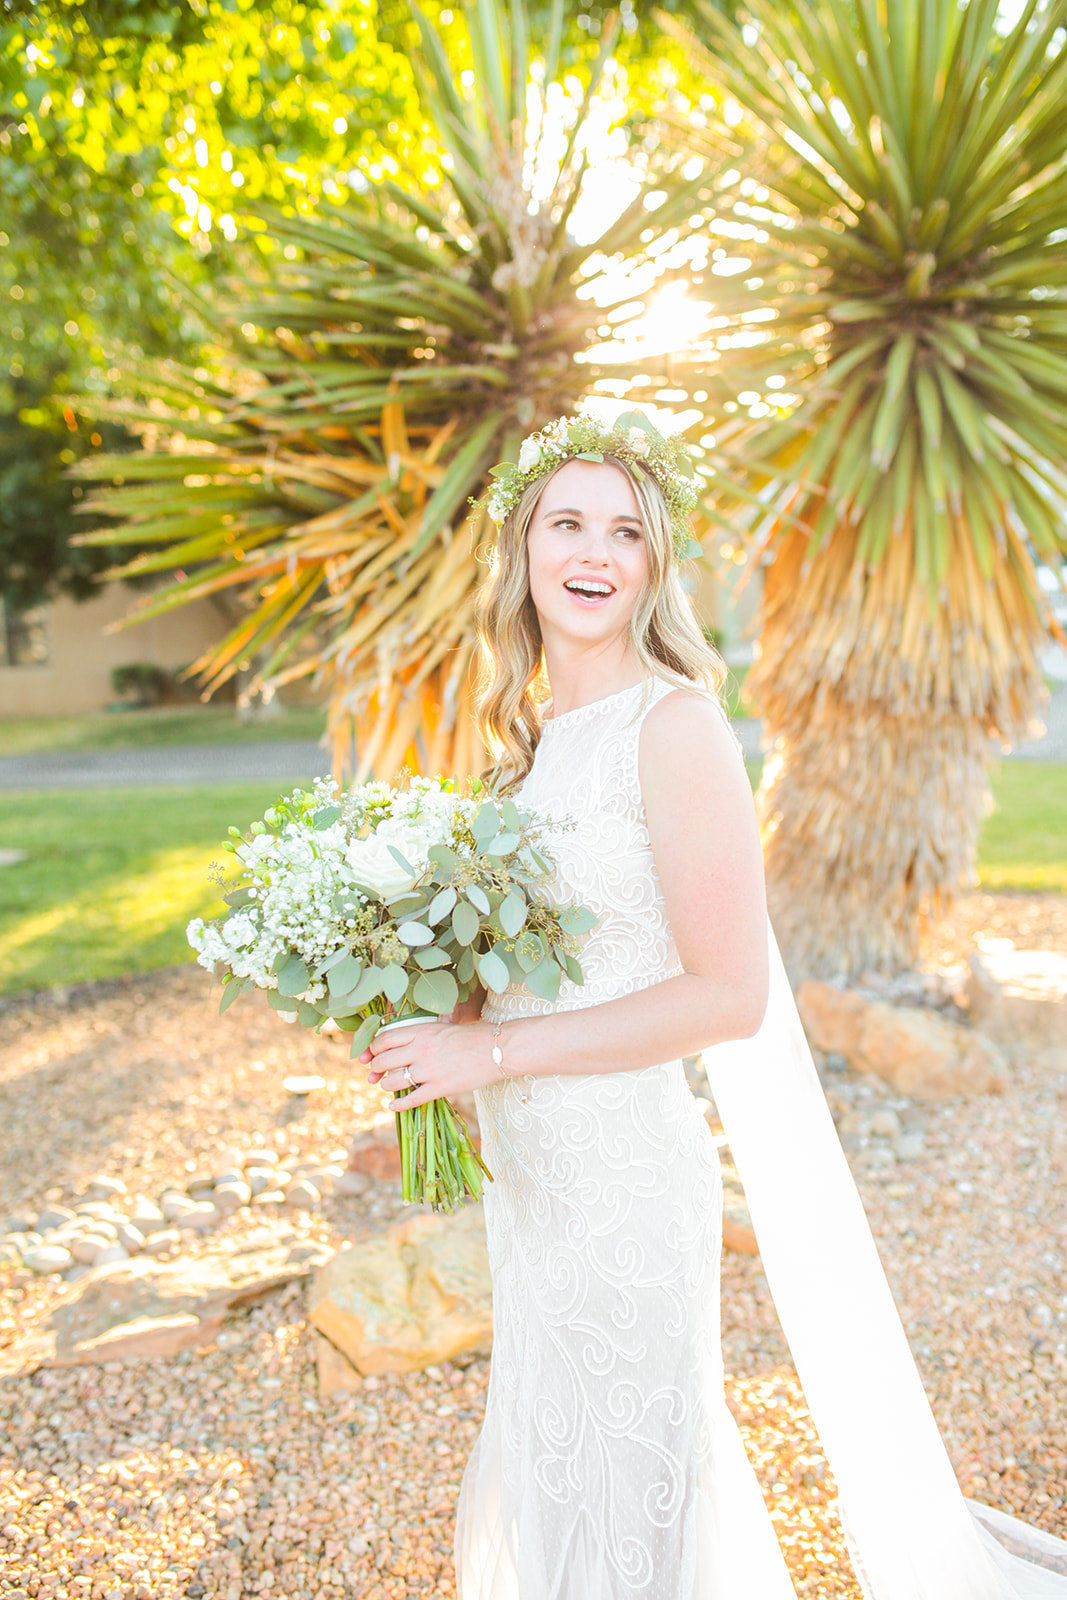 Albuquerque Wedding Photographer_Catholic Wedding_www.tylerbrooke.com_Kate Kauffman_074